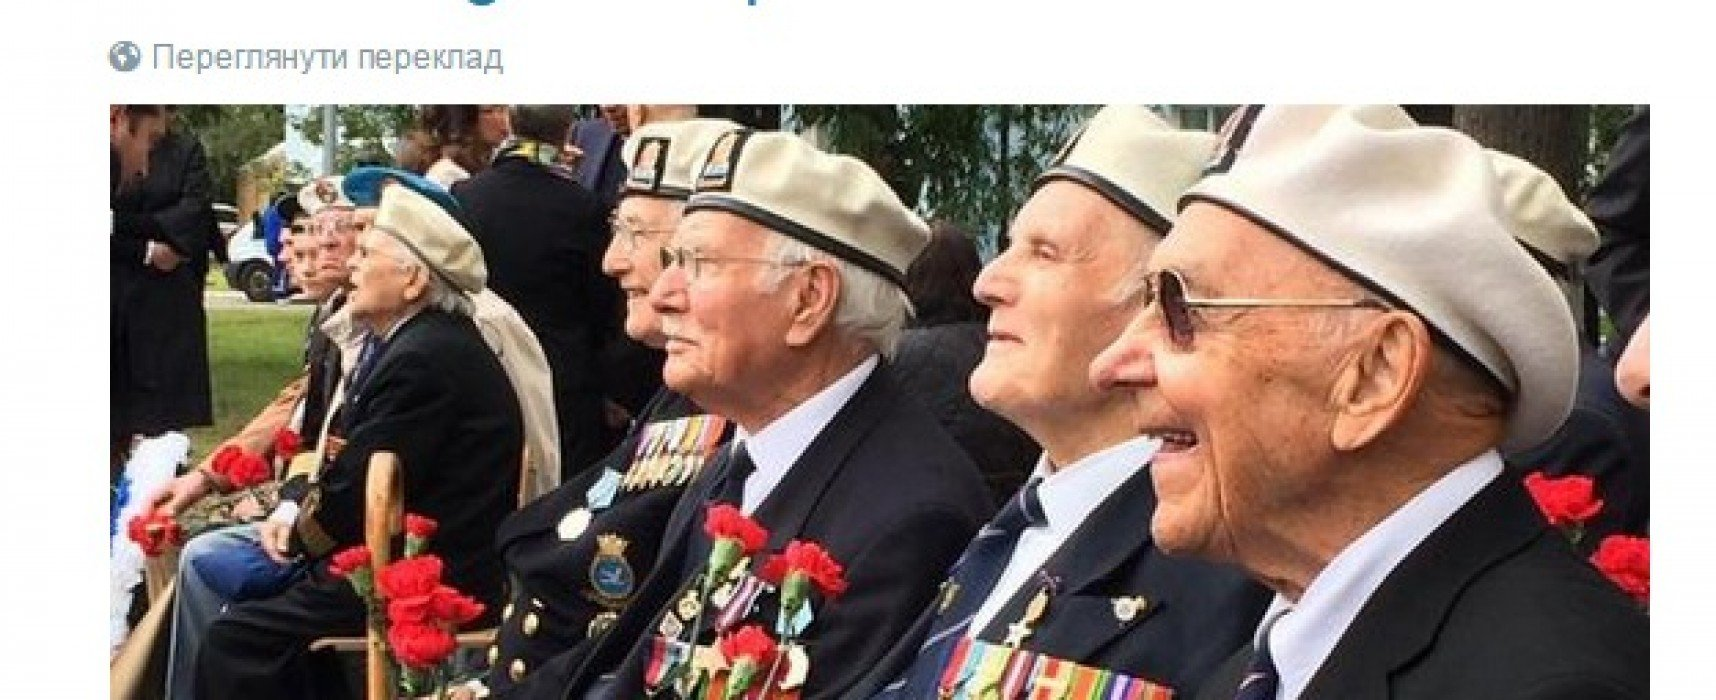 Russian Embassy in Great Britain Uses Fake Photo of British Veterans